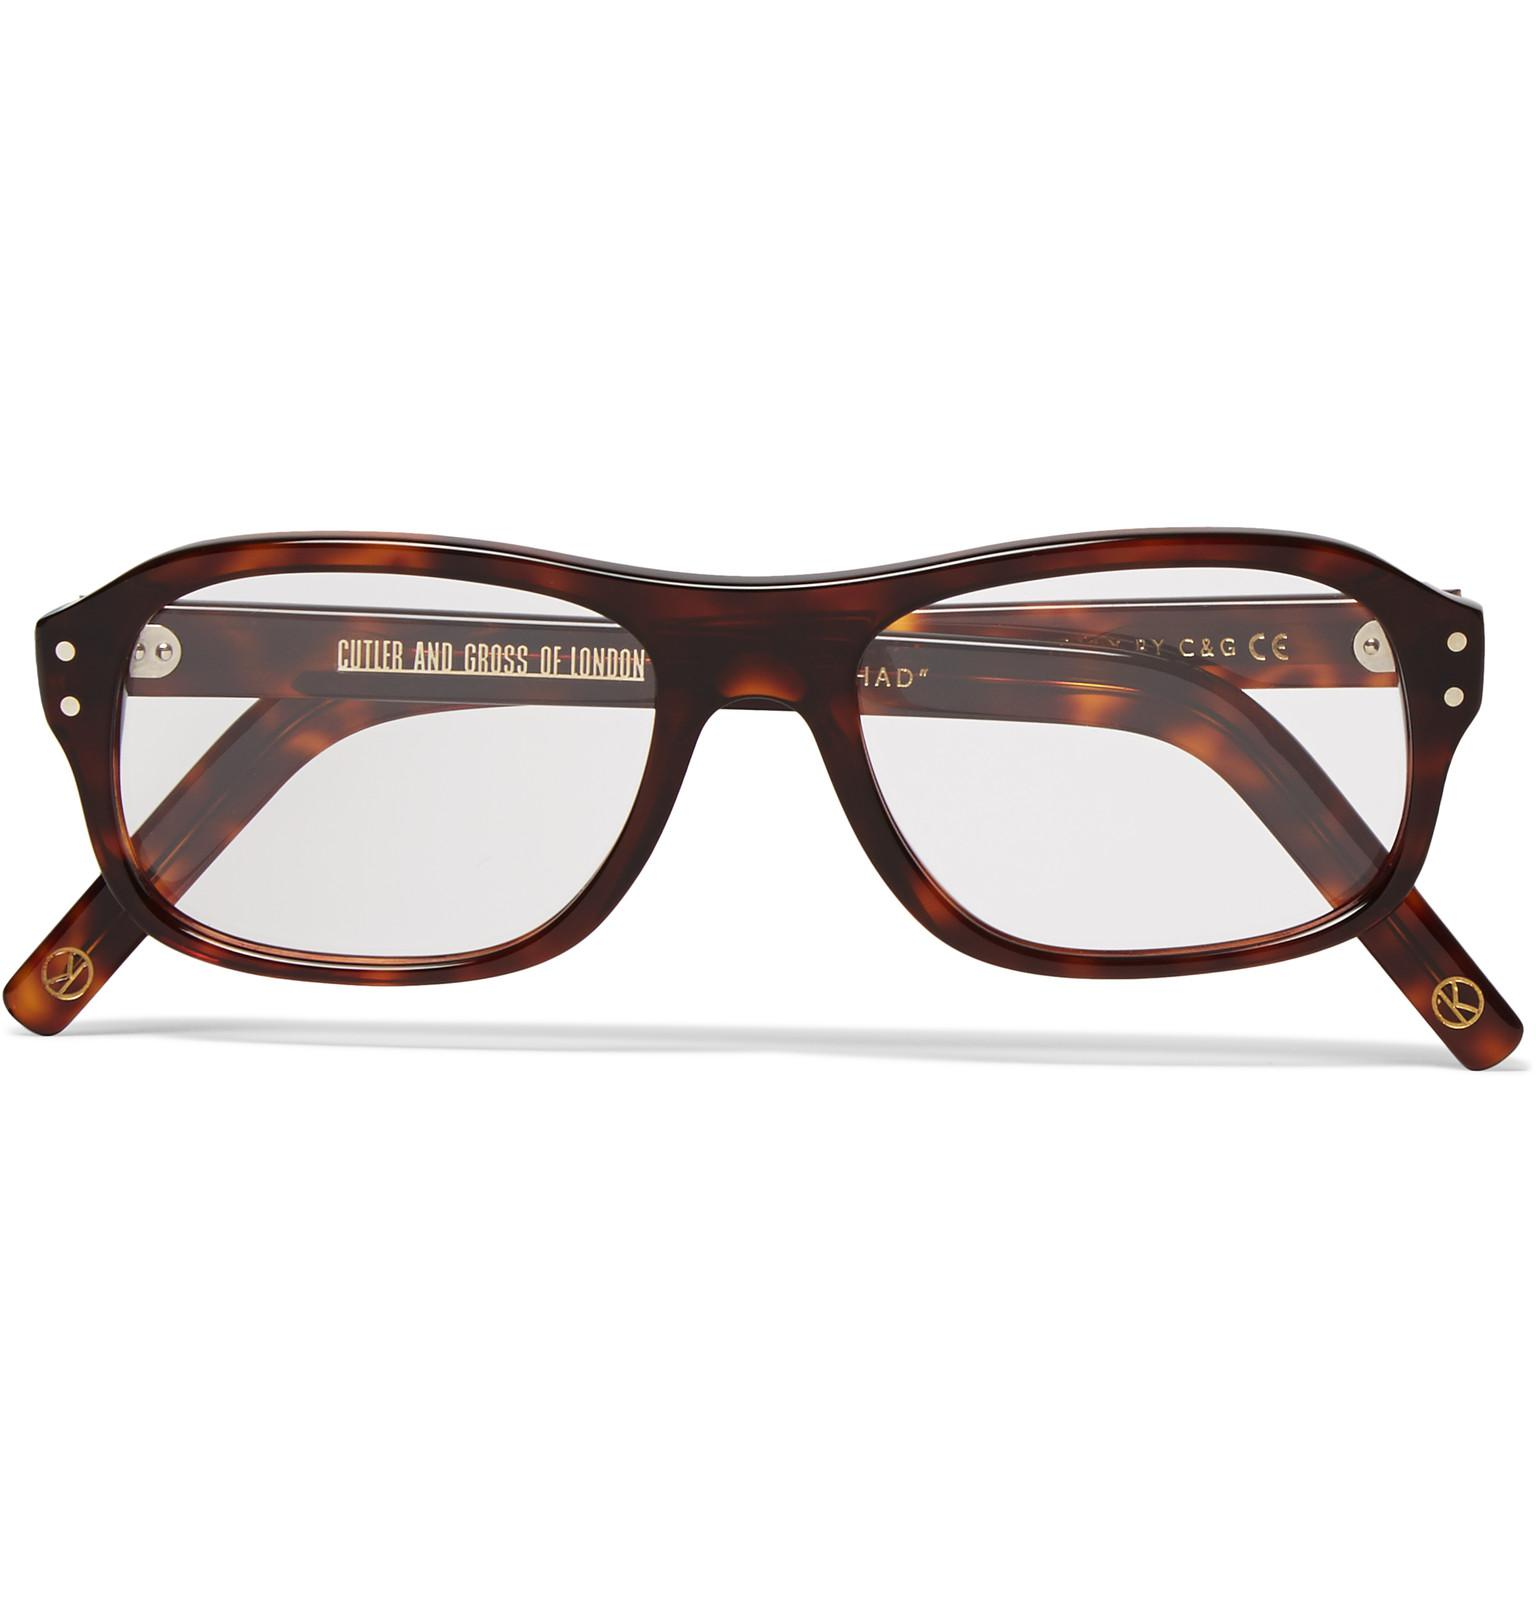 77289d04e9 Kingsman. Men s Brown + Cutler And Gross Square-frame Tortoiseshell Acetate  Optical Glasses